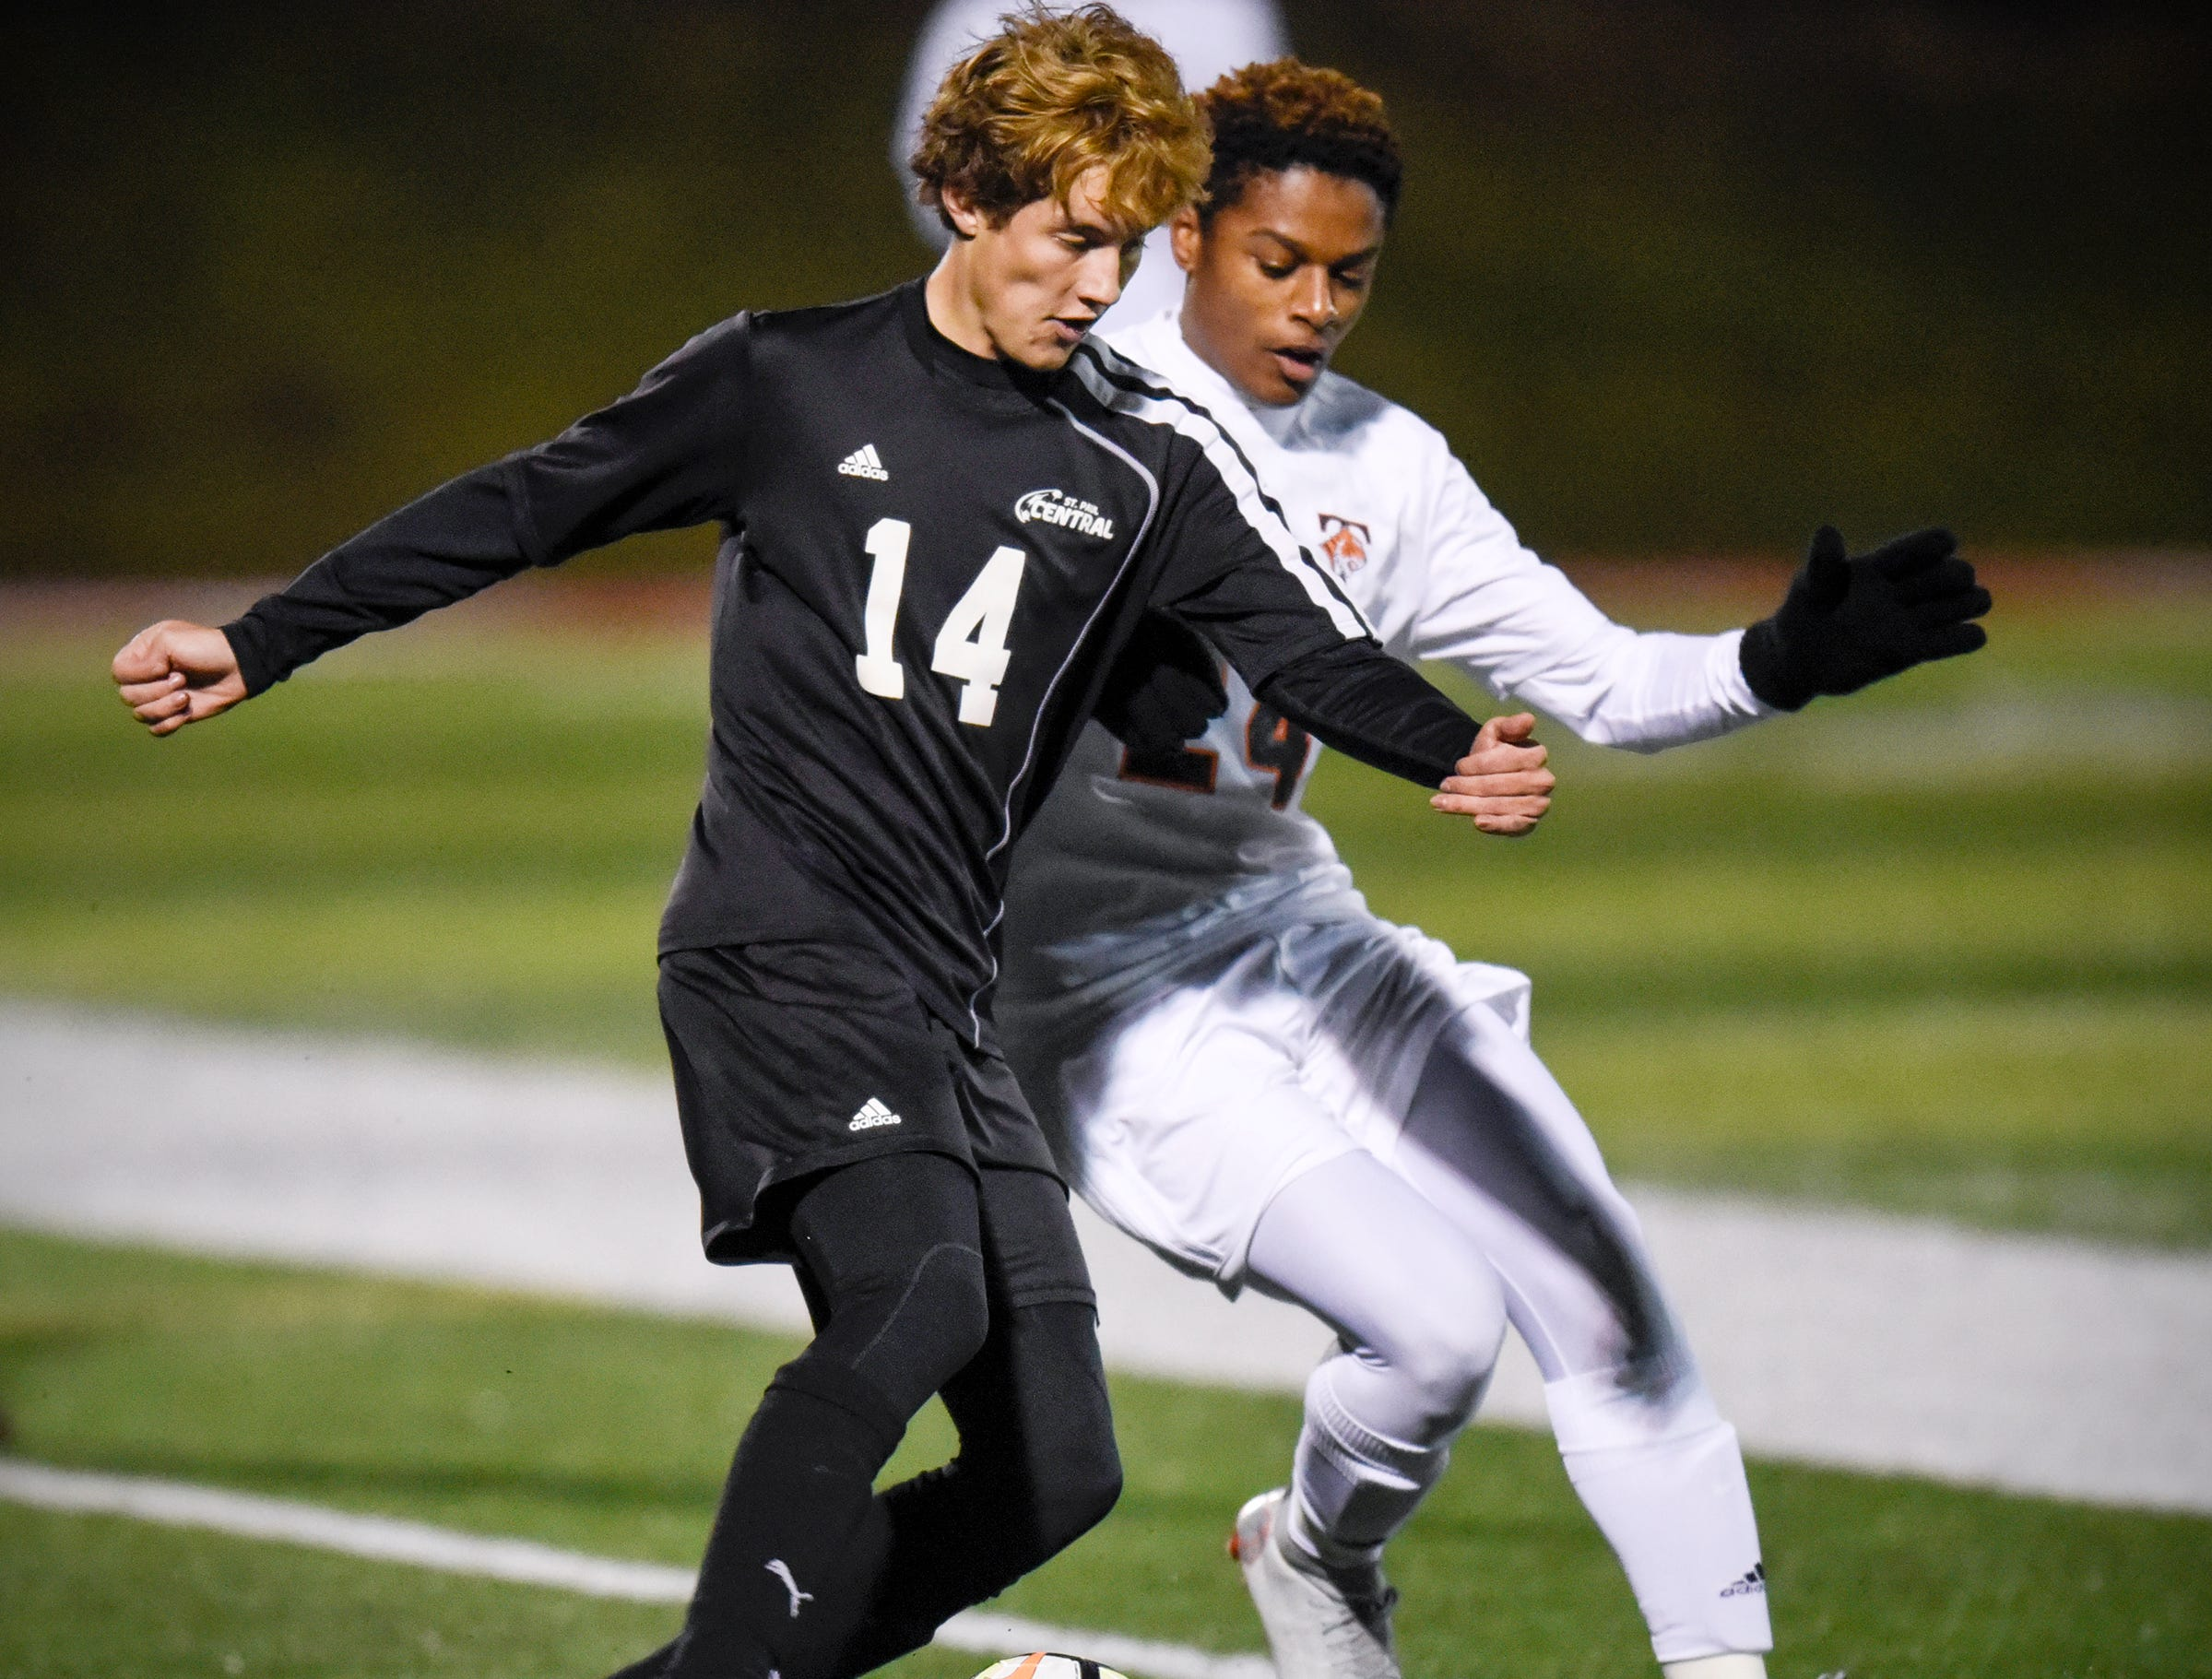 Ronald Hall Jr. of St. Paul Central and Drake Jett of Tech struggle for control of the ball during the Thursday, Oct. 25, Class 2A state quarterfinal game at Husky Stadium in St. Cloud.